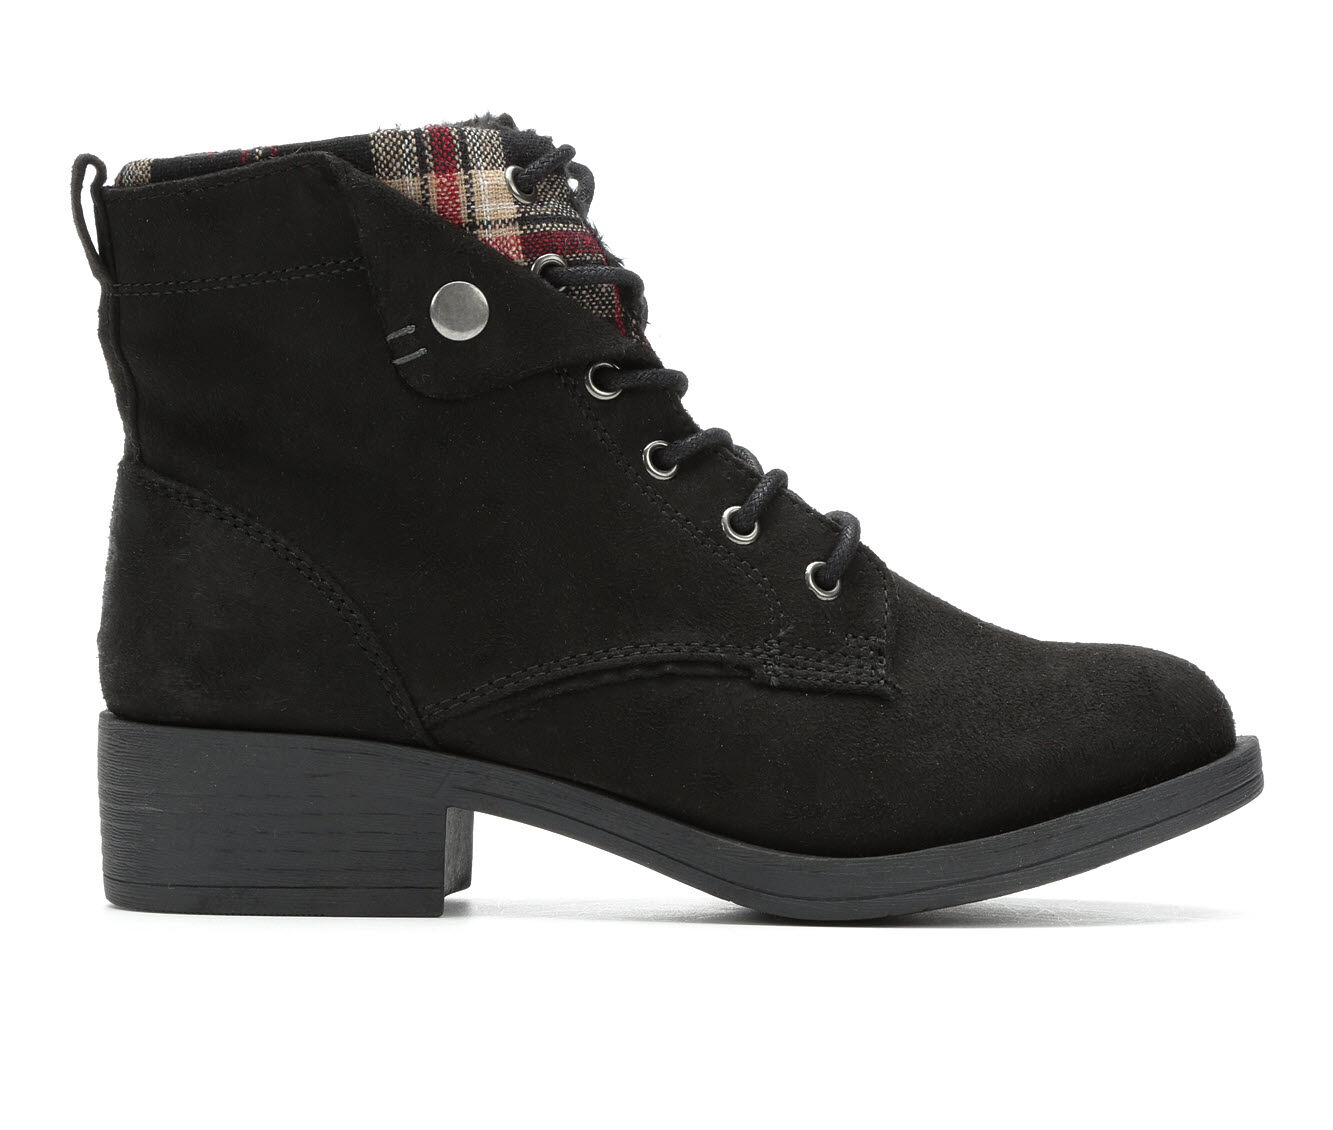 Candy Junie Combat Boots   Shoe Carnival